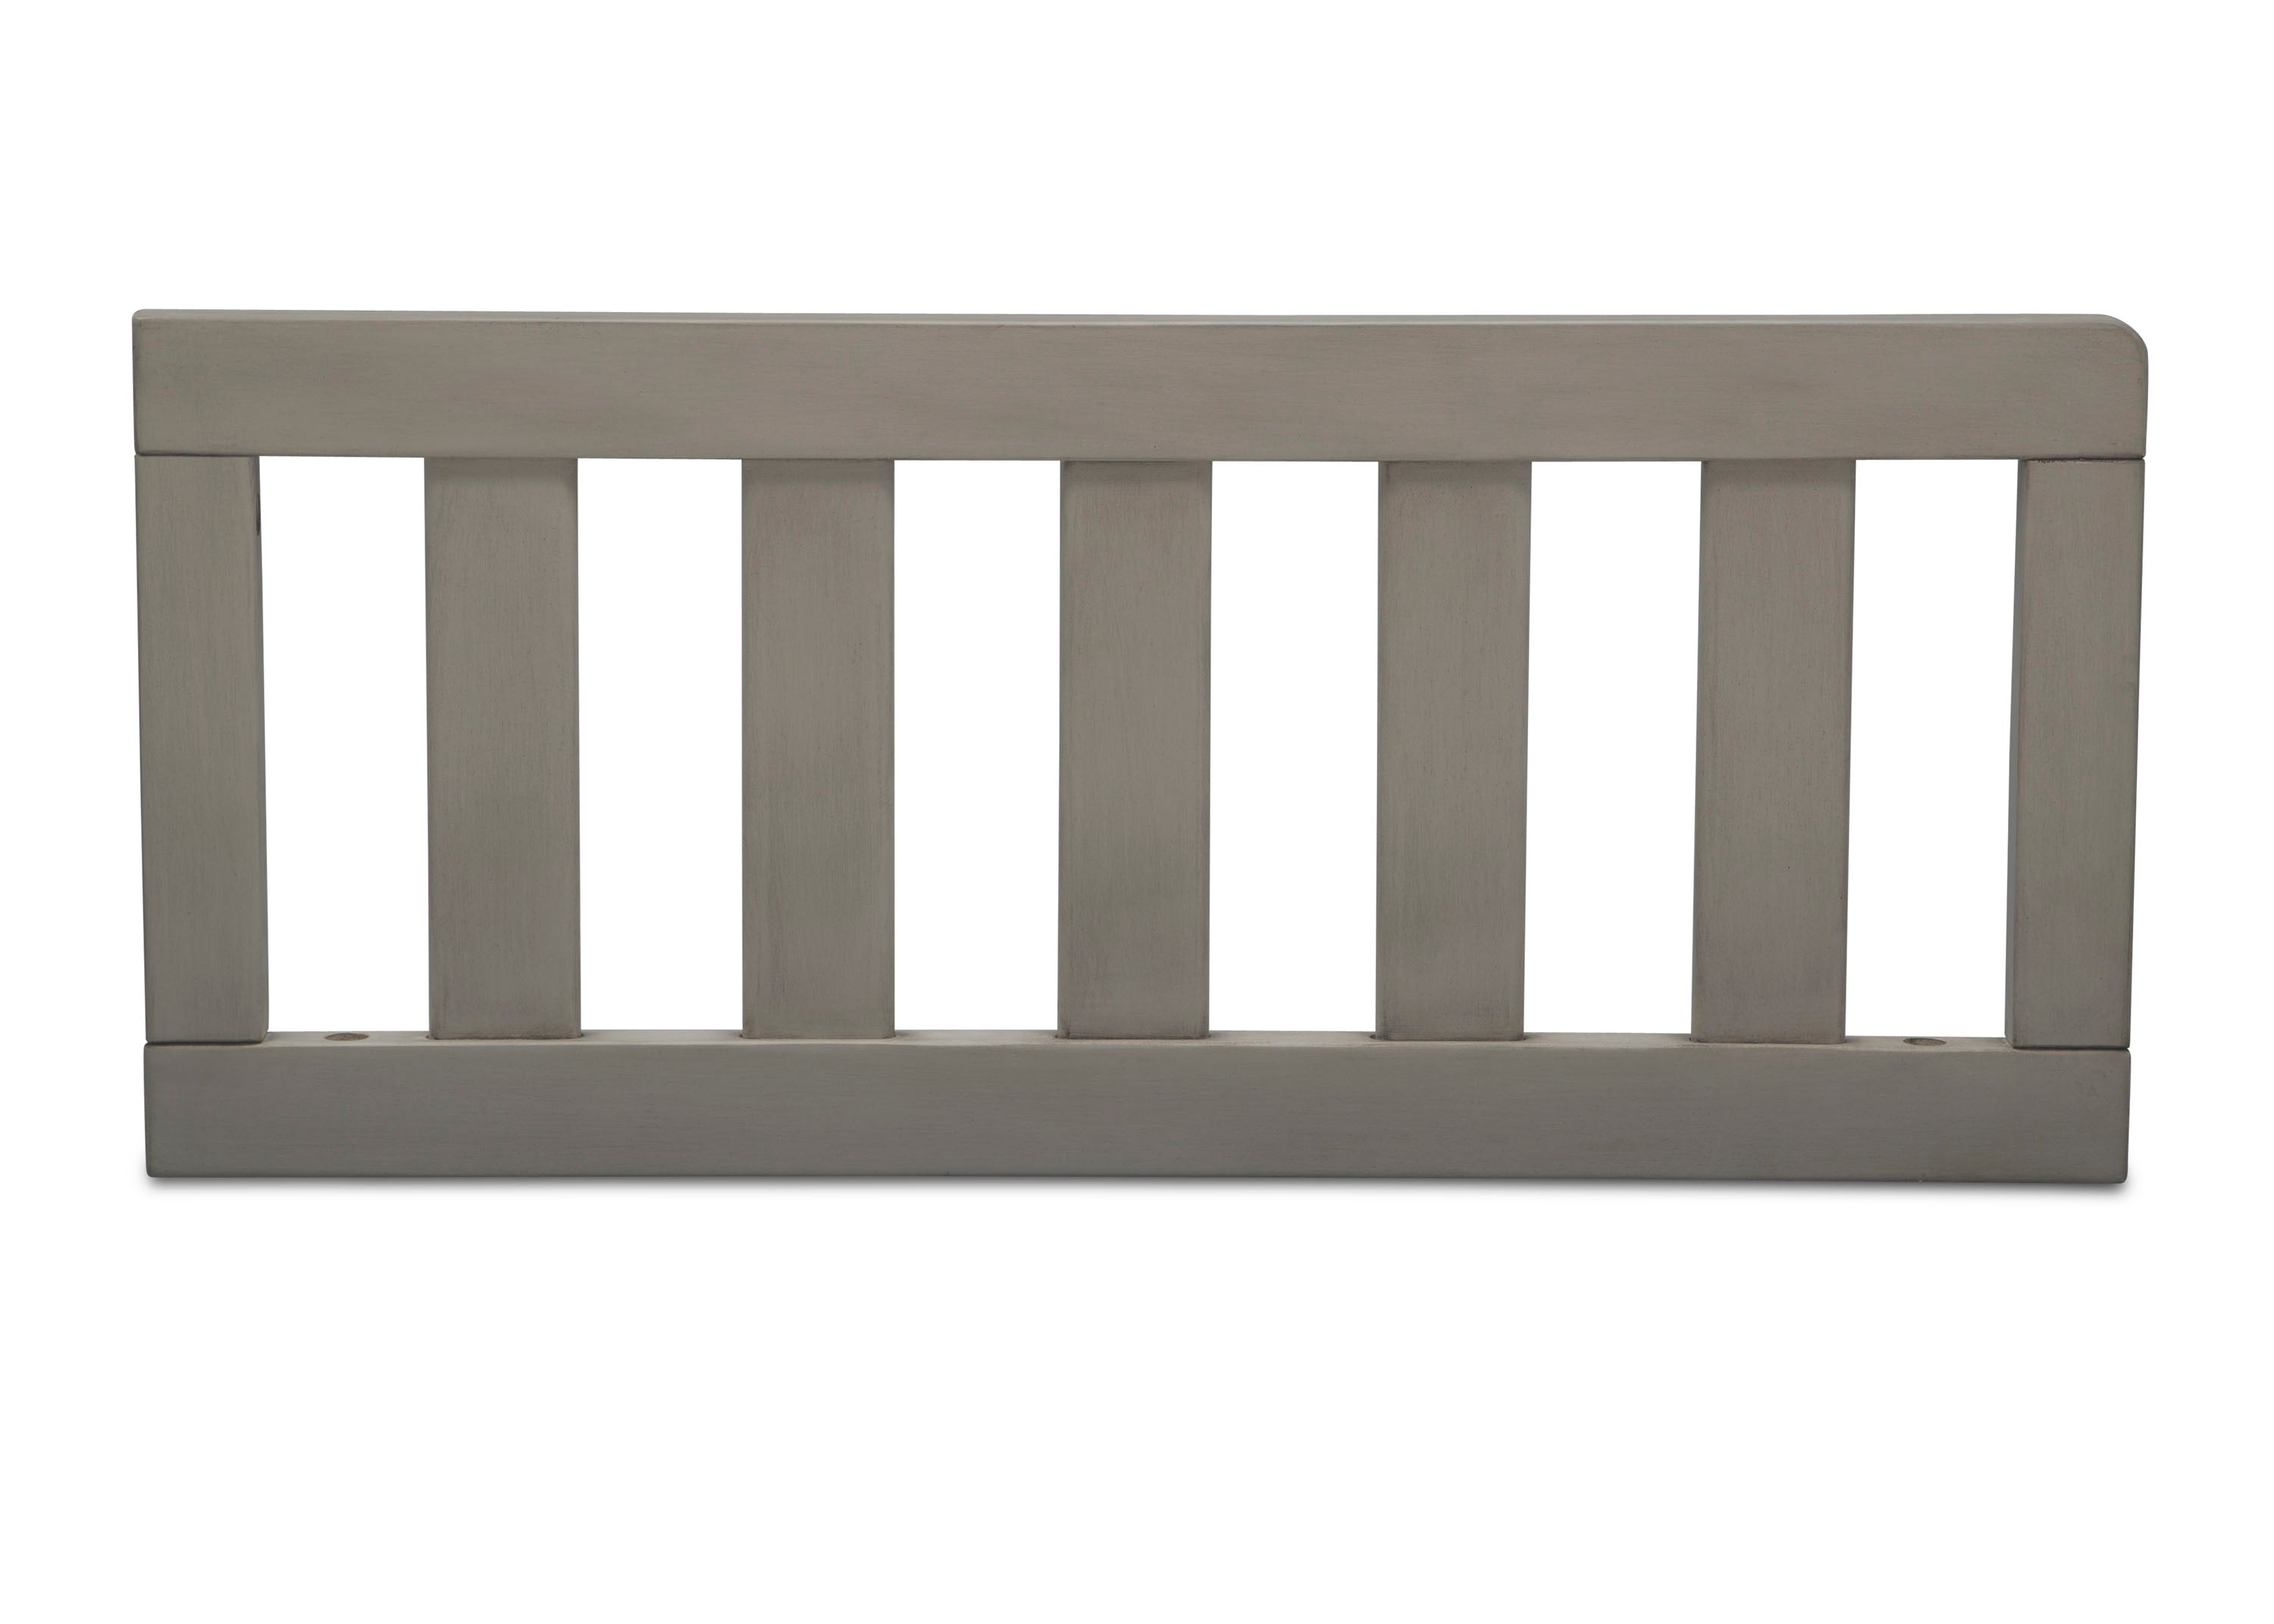 Delta Children Storm (161) Toddler Guardrail (180130) Front Silo, b1b for Bristol 4-in-1 Convertible Crib